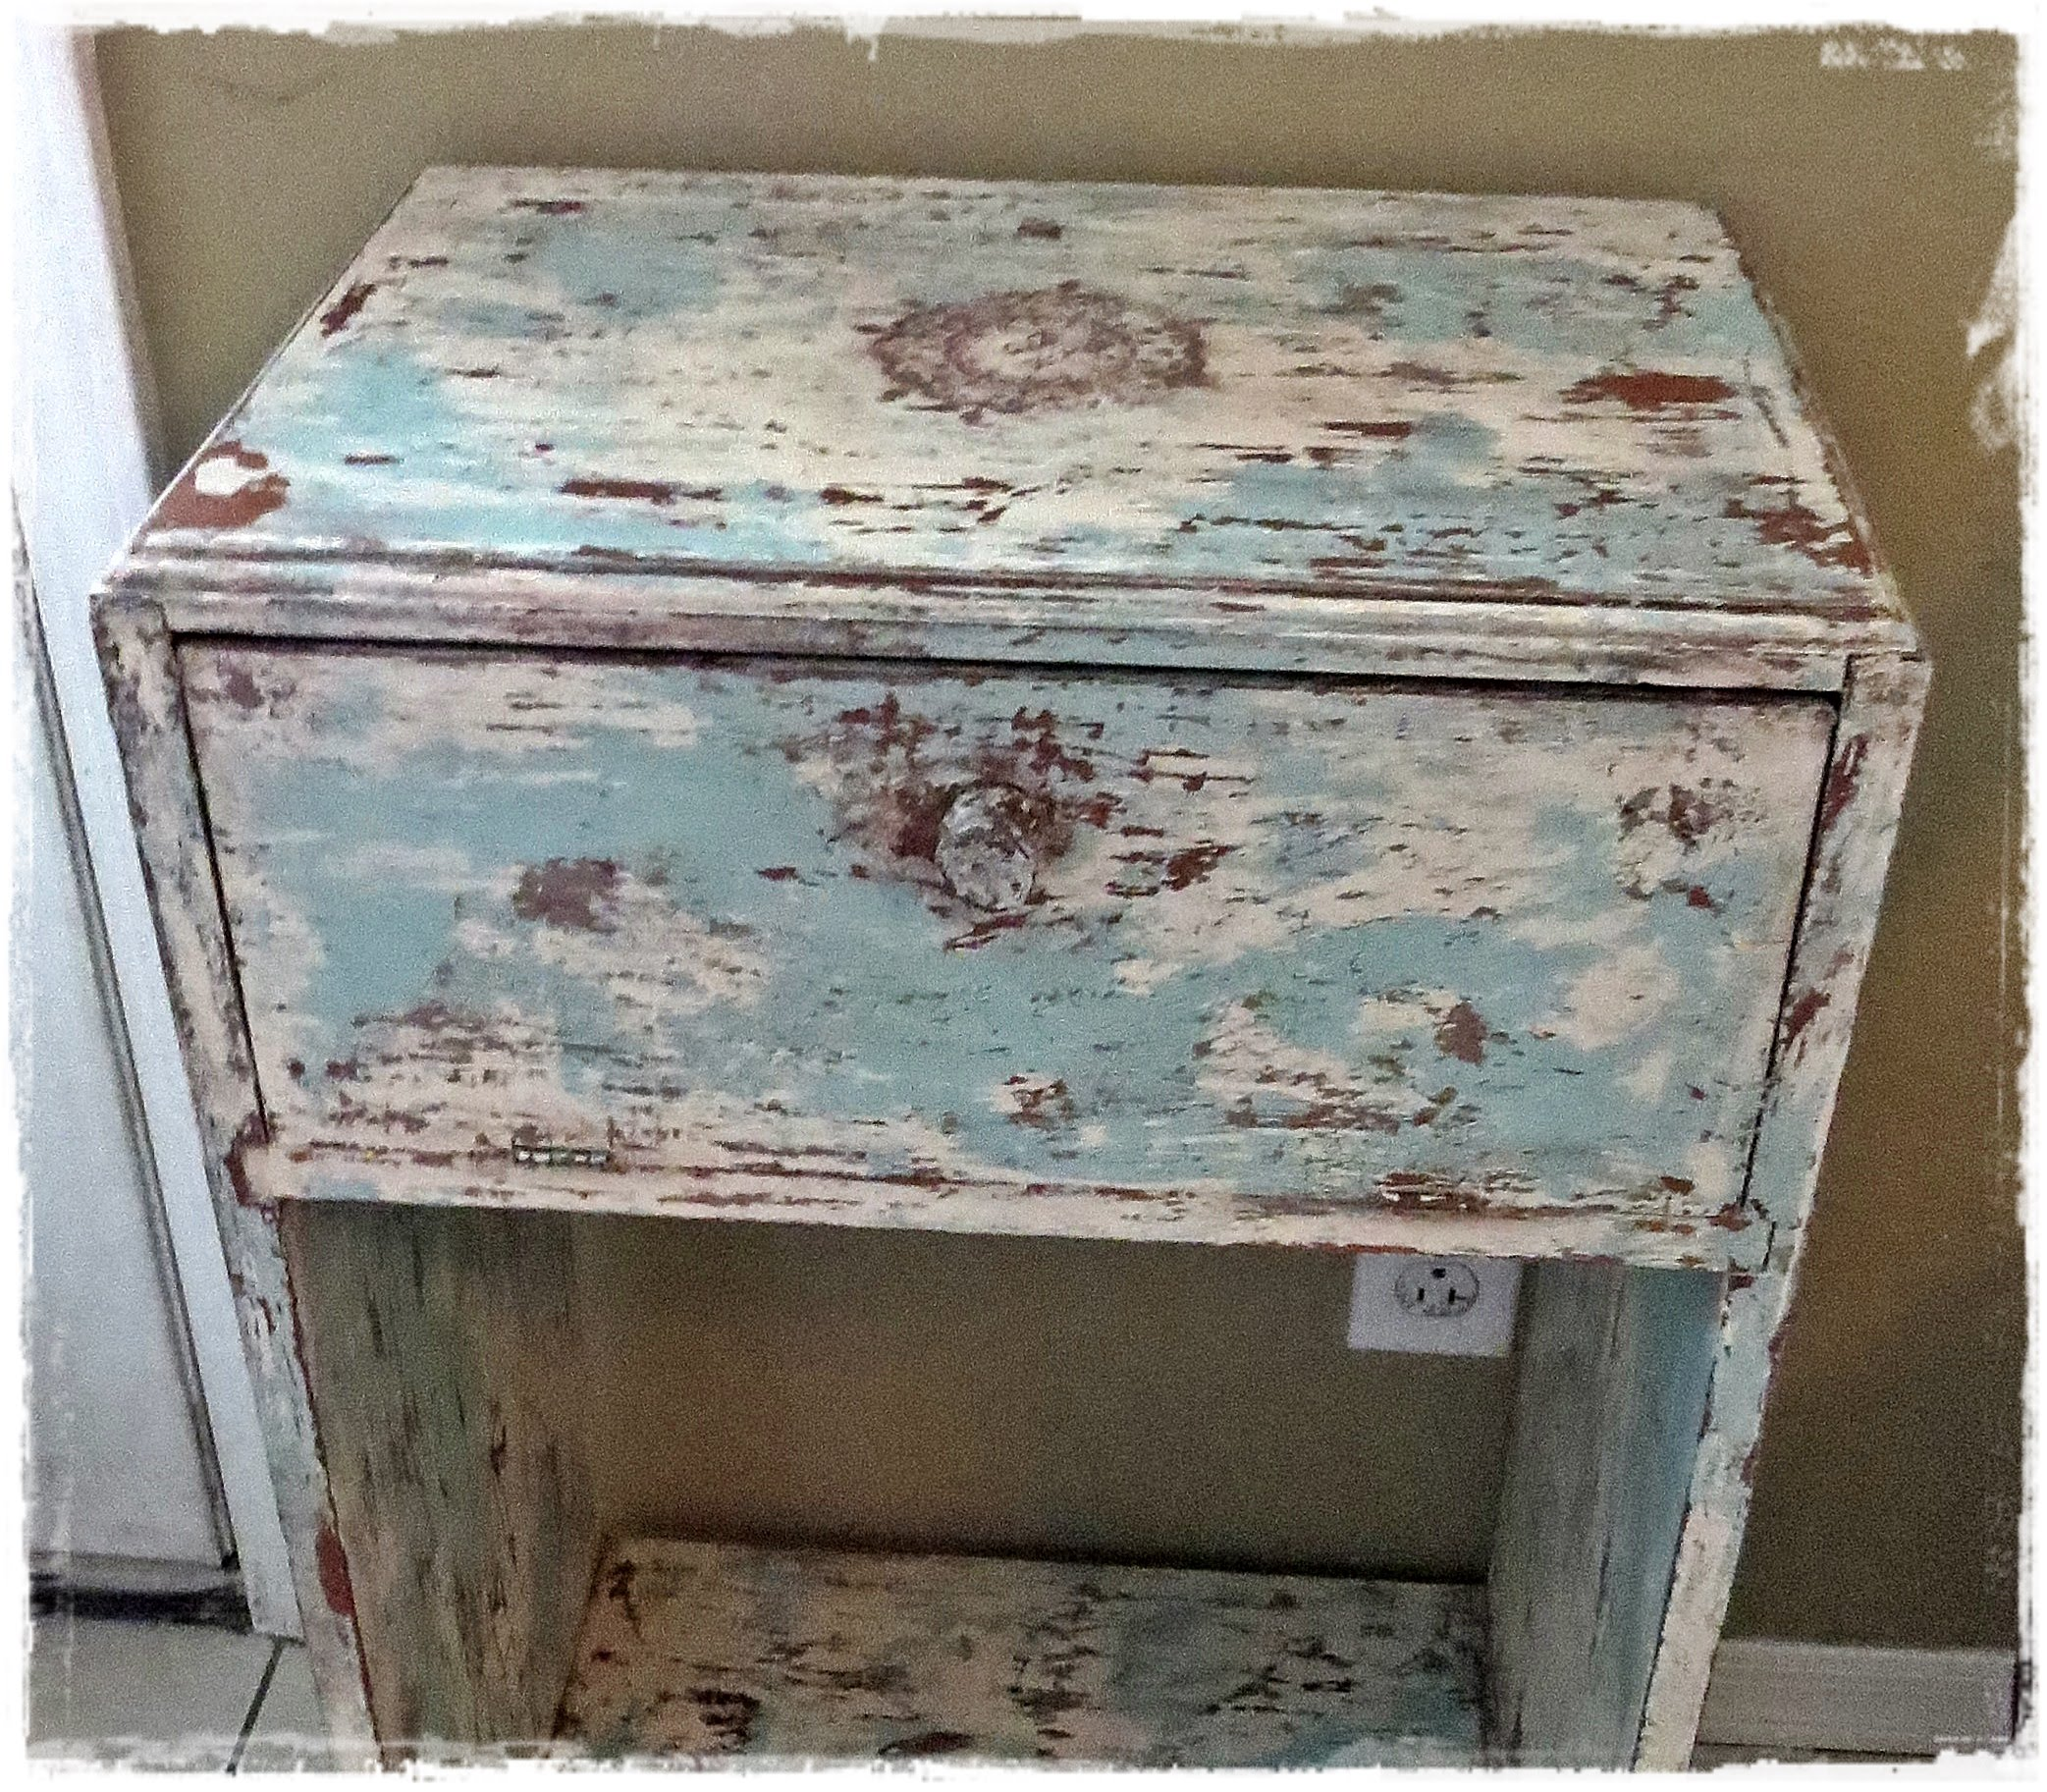 32 DIY Paint Techniques and Recipes - How to Get a Shabby Chic Distressed Paint Finish DIY! - Cool Painting Ideas for Walls and Furniture - Awesome Tutorials for Stencil Projects and Easy Step By Step Tutorials for Painting Beautiful Backgrounds and Patterns. Modern, Vintage, Distressed and Classic Looks for Home, Living Room, Bedroom and More